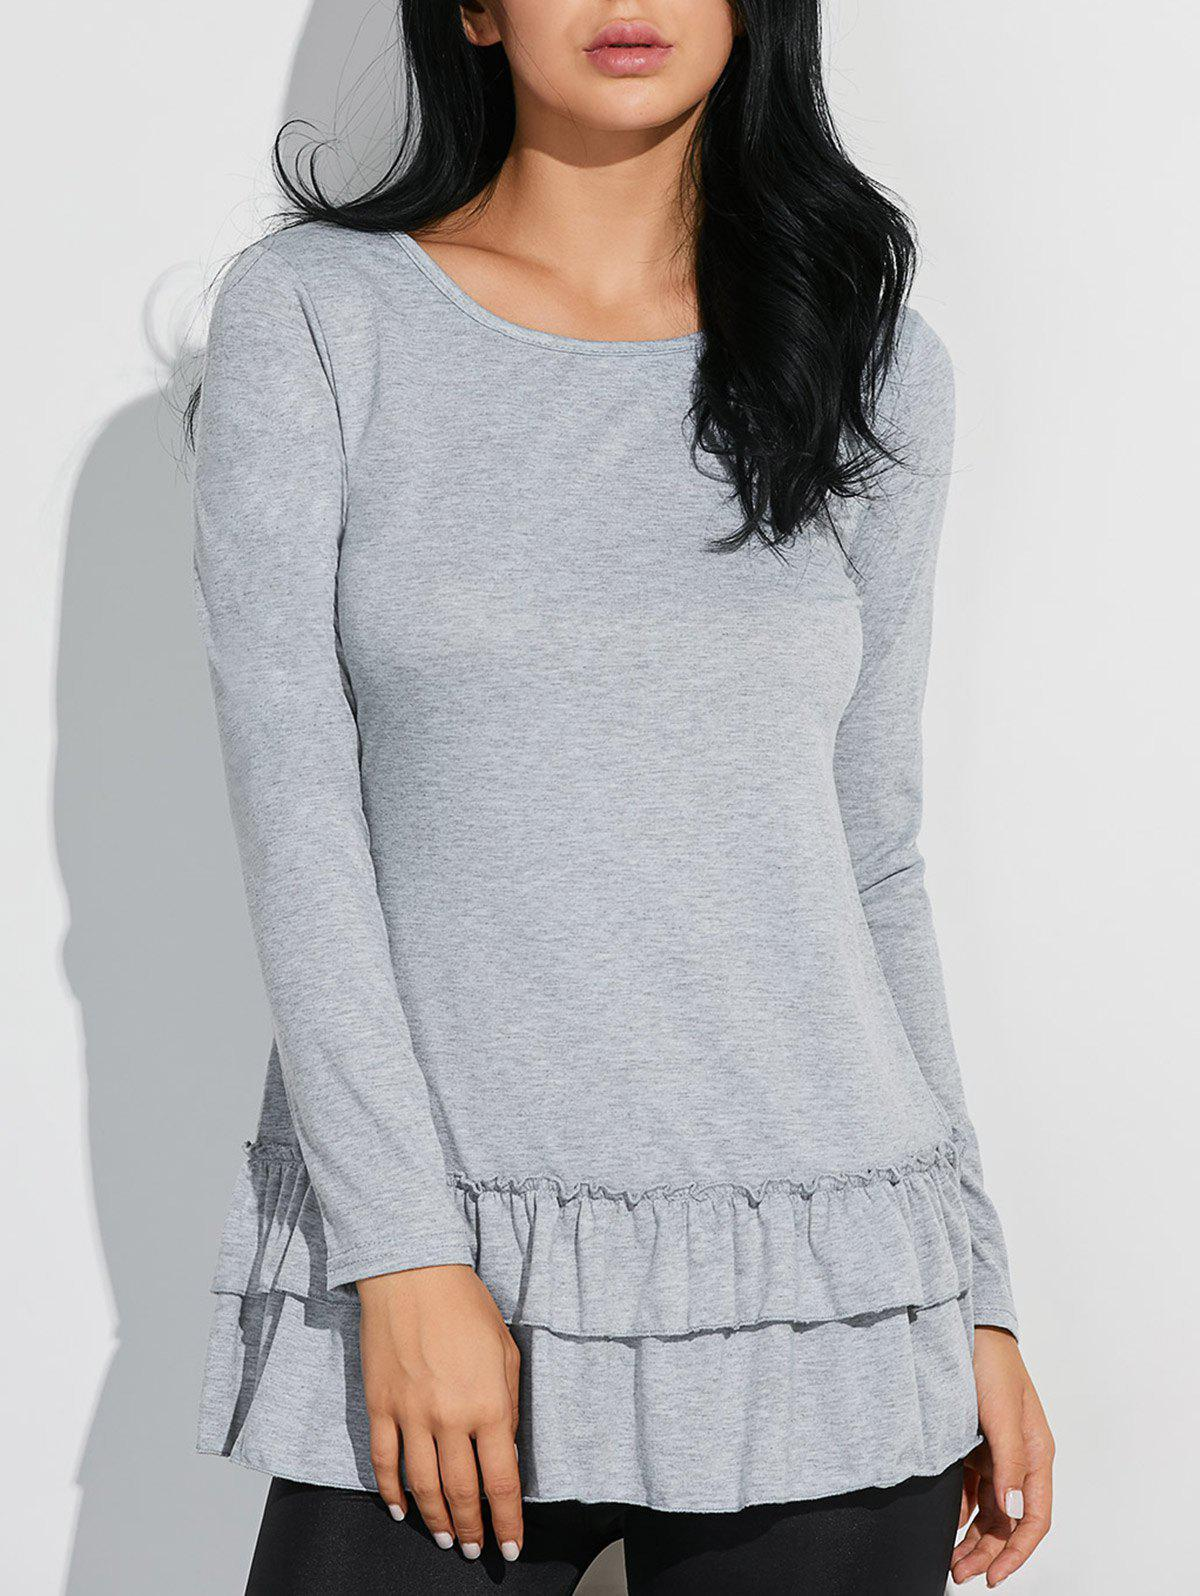 Affordable Layered Ruffles Long Sleeve T-Shirt